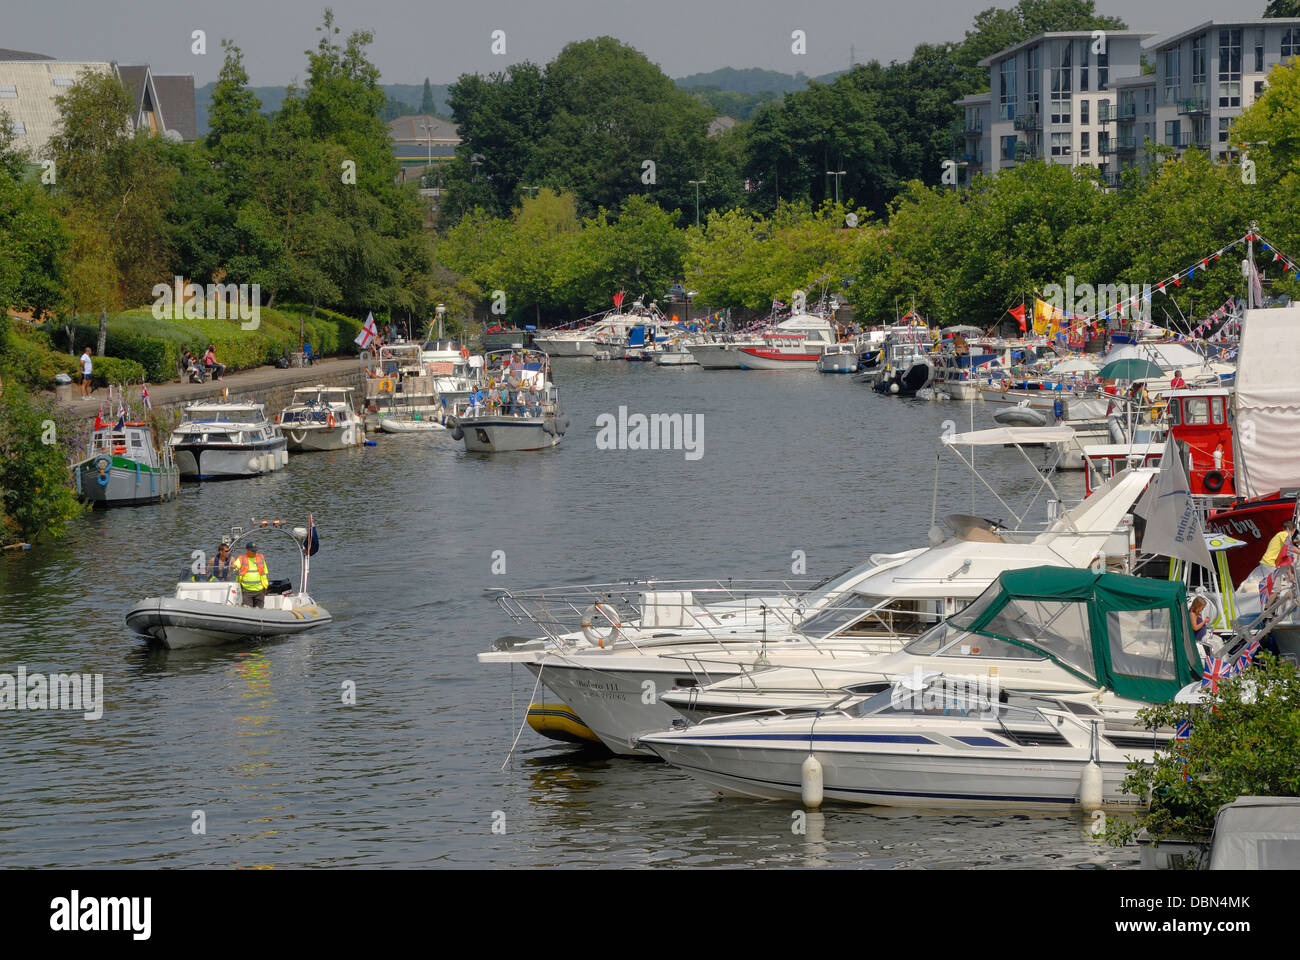 Maidstone, Kent, England, UK. Annual Maidstone River Festival (July 27th 2013) Boats moored on the Medway. Stock Photo